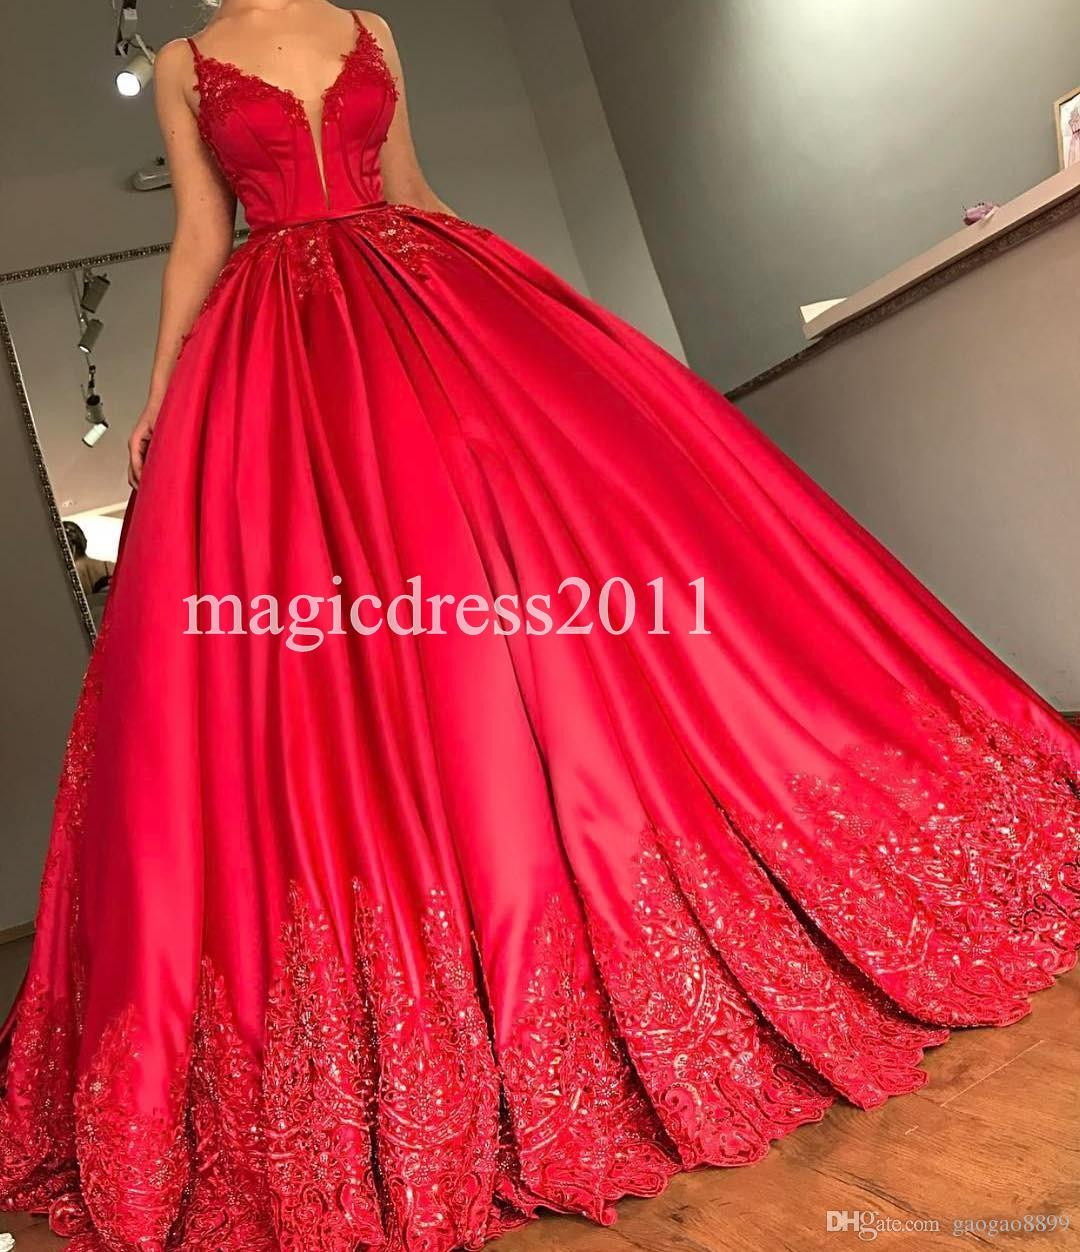 Luxury Red Ball Gown Prom Dresses With Court Train Lace Appliqued Formal Evening Gowns Spaghetti Open Back Dress for Party wear 2019